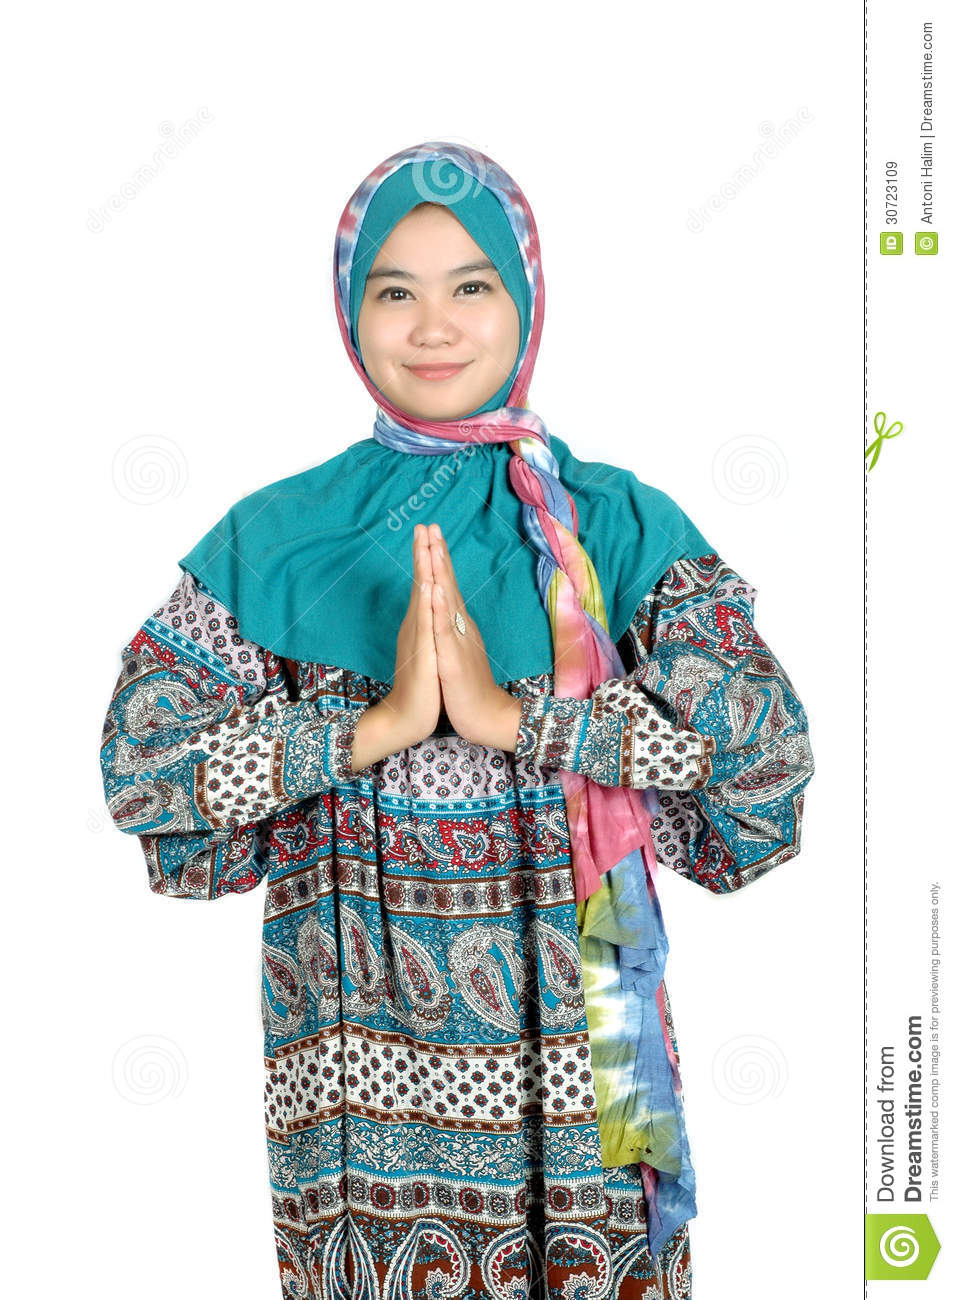 palms muslim girl personals Muslim women 100% free muslim singles with forums, blogs, chat, im, email, singles events all features 100% free.